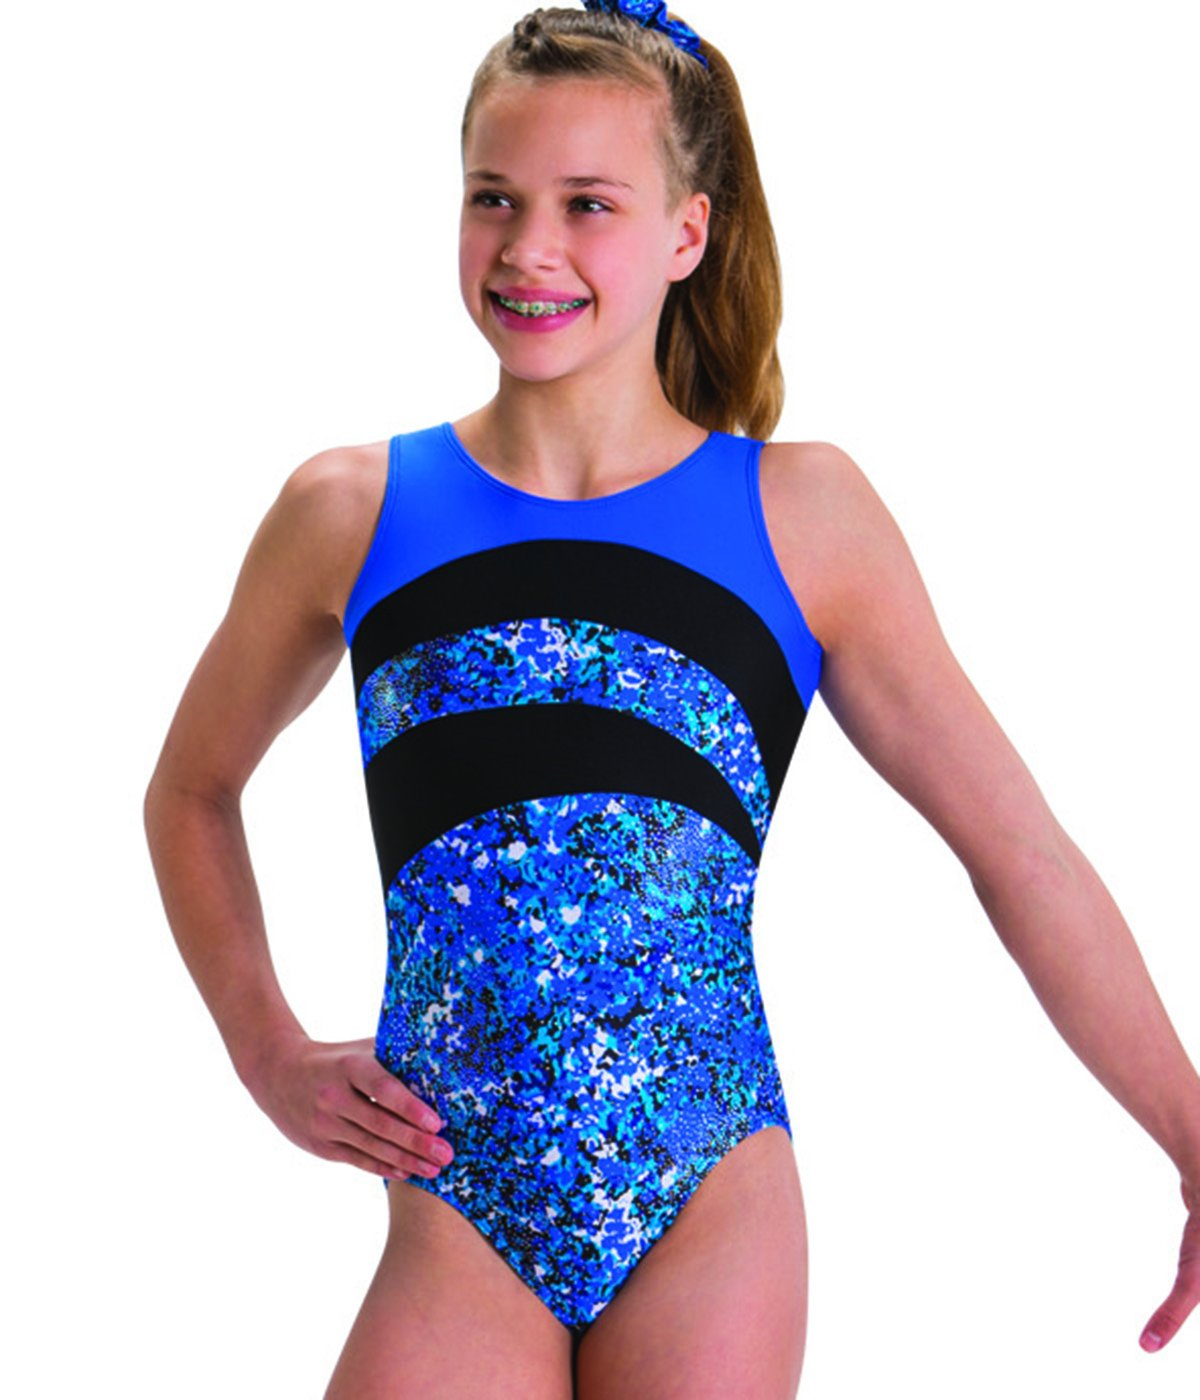 5e6309c1d309 Buy Motionwear Gymnastic Out of The Blue Print Silkskyn Curved ...